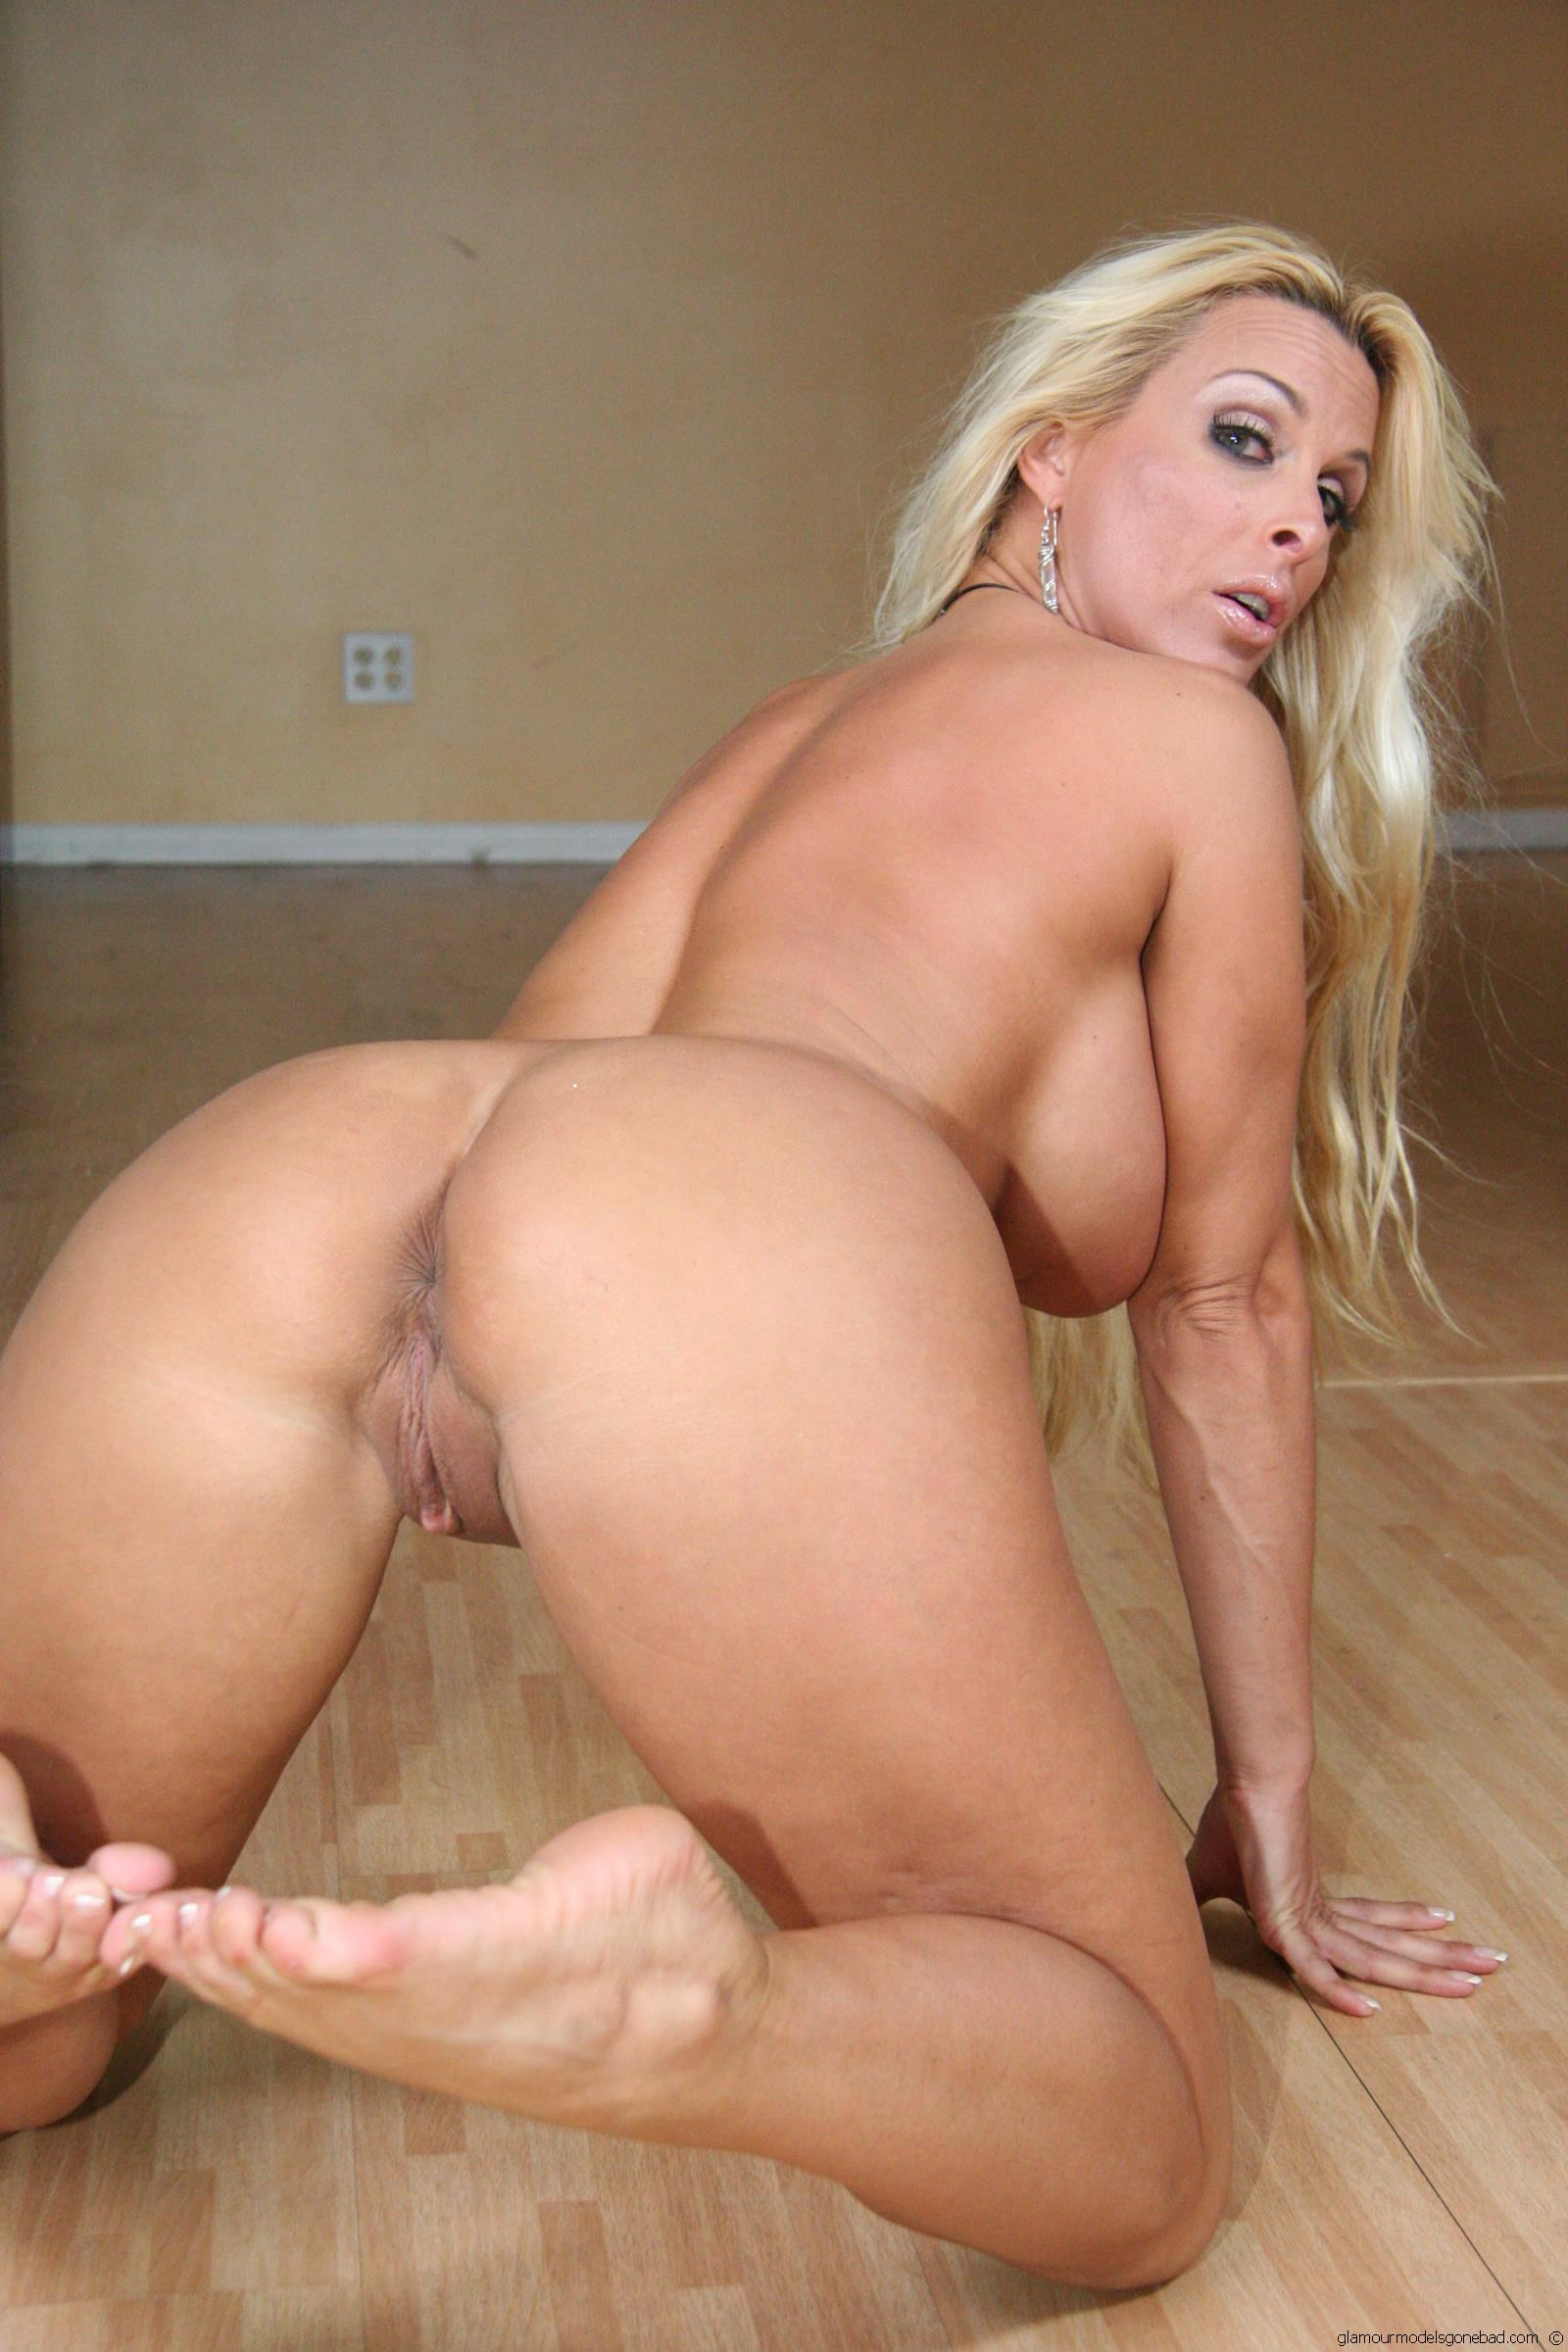 Holly halston porn star